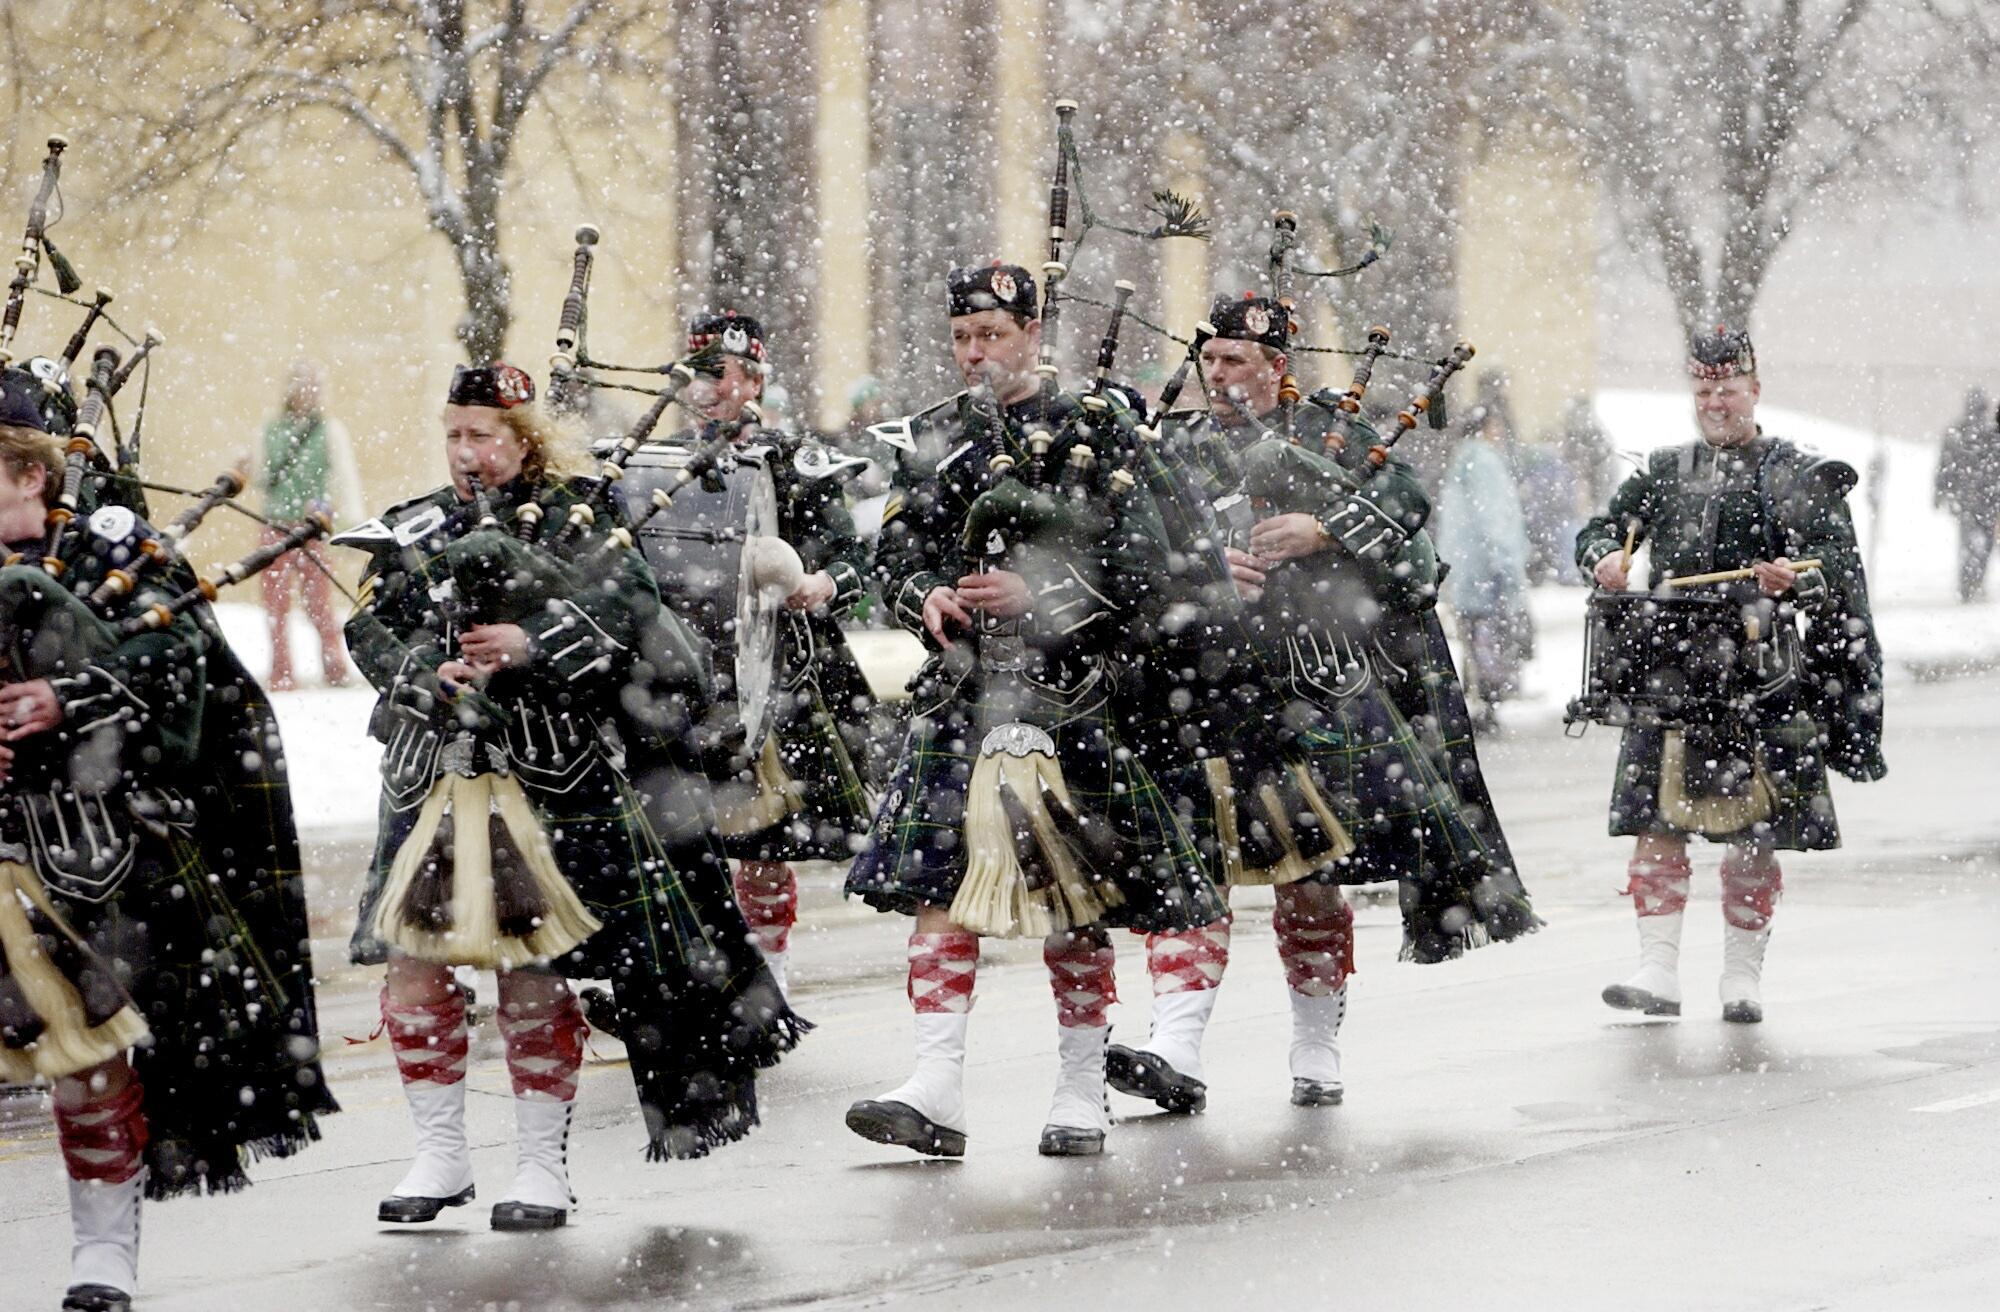 Three years ago, heavy snow fell during the St. Patrick's Day parade in Buffalo. That scene could repeat itself this year as forecasters call for below-average days through the end of March. (Buffalo News file photo)